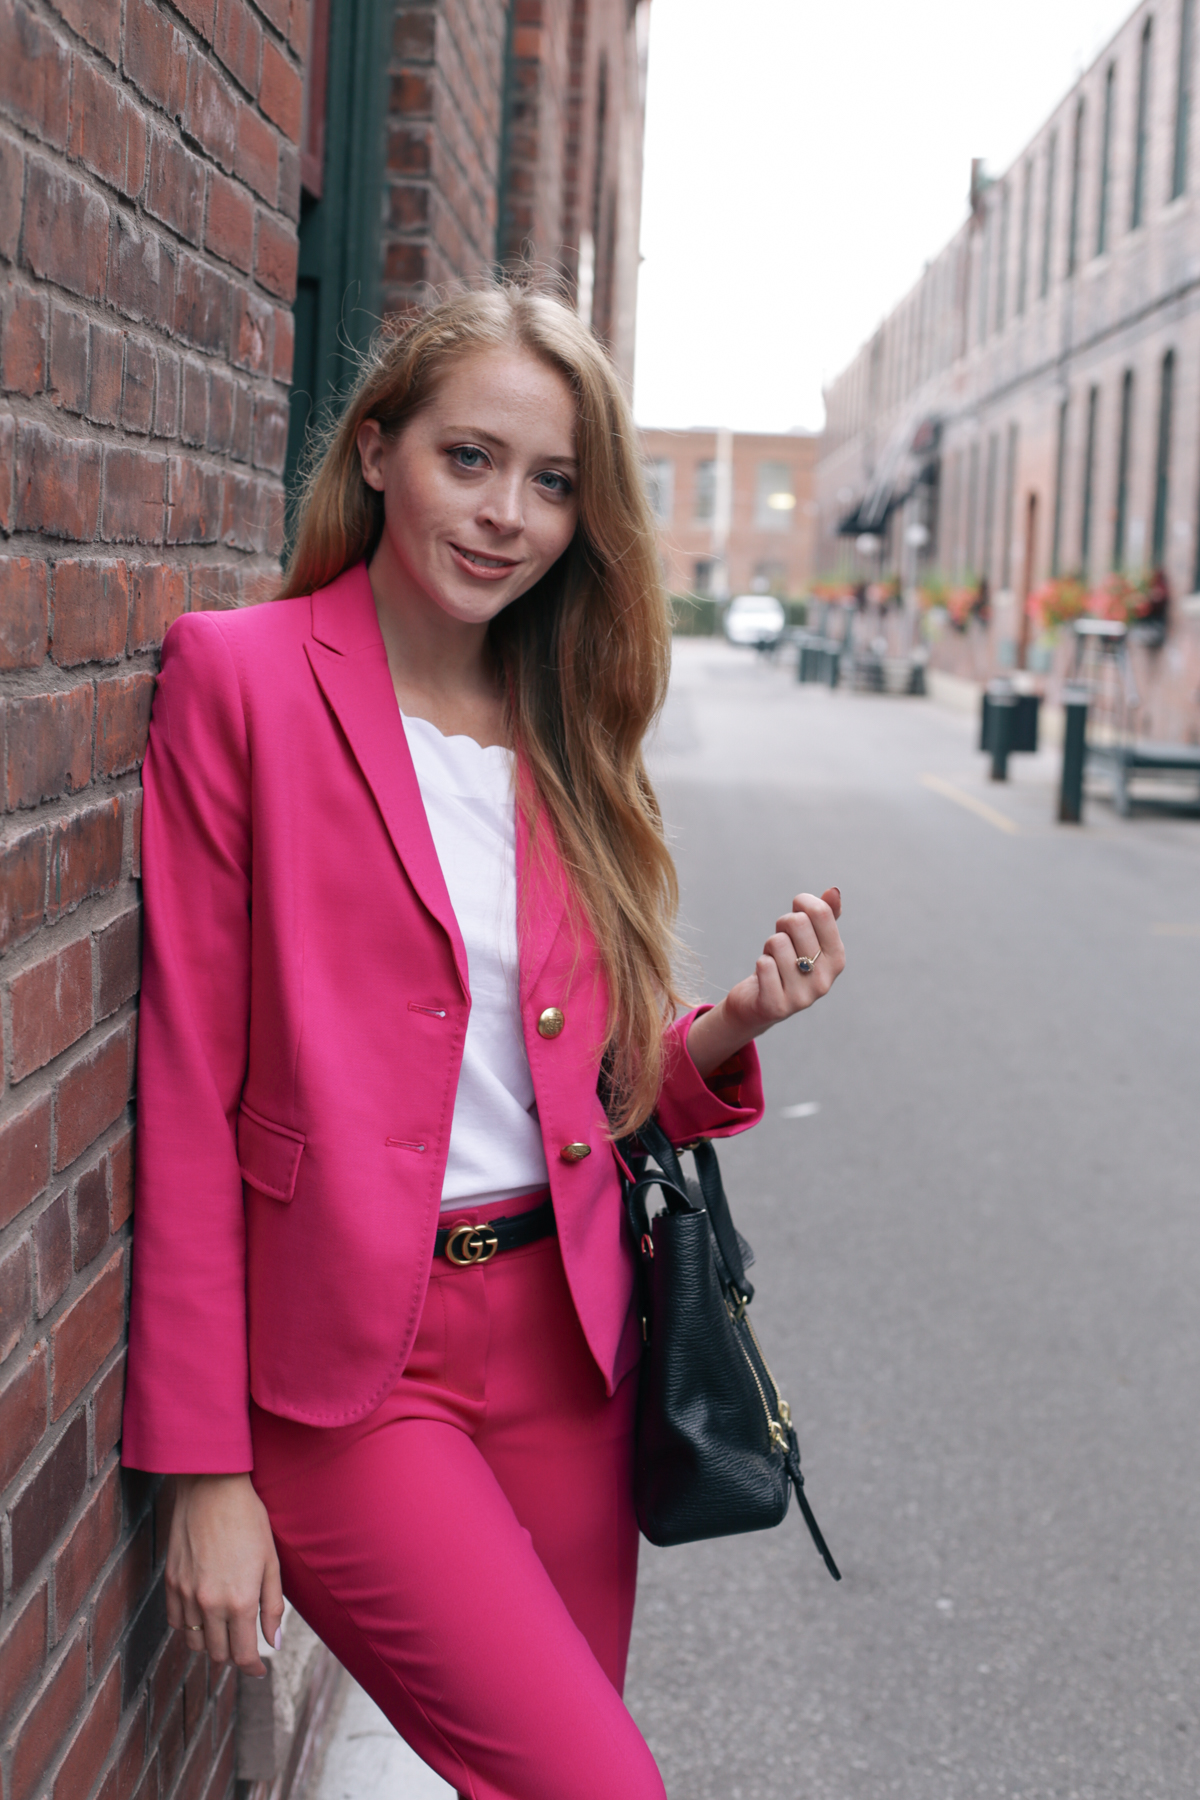 talbots pink suit (5 of 10)